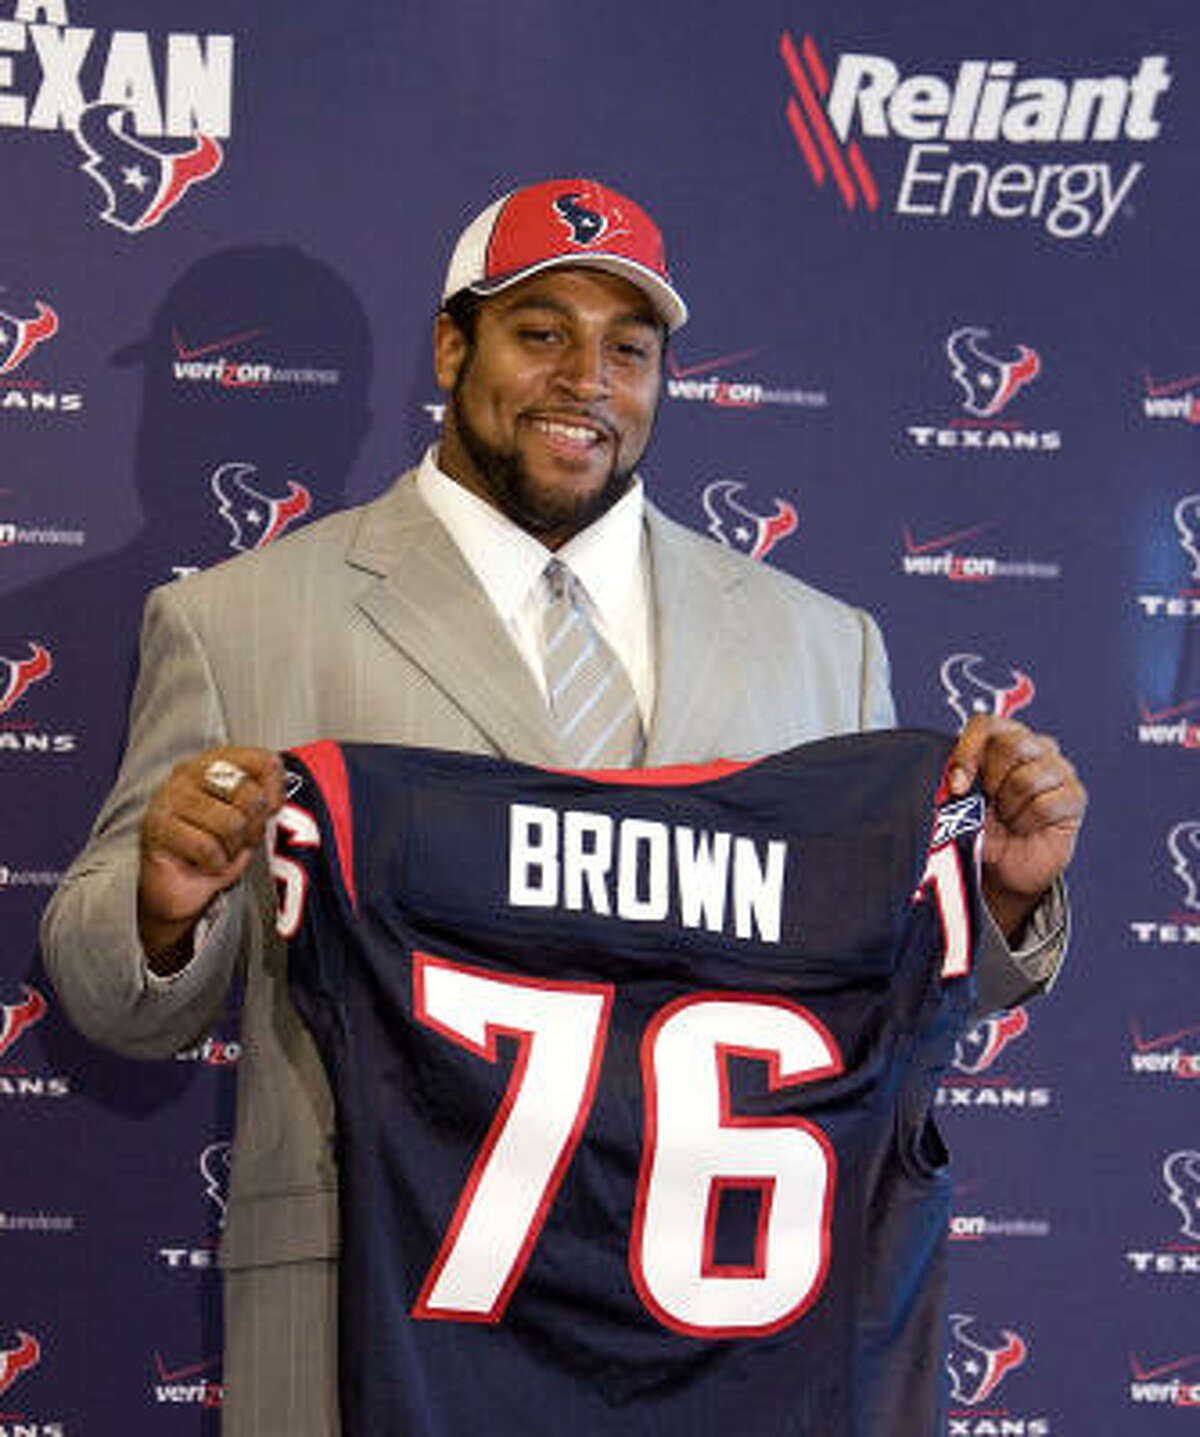 2008:Duane Brown, offensive tackle, Virginia Tech  Draft slot: 26th overall Games played/started for Texans: 133/133 (2008-2017) Honors: First-team All Pro (2012), three-time Pro Bowl selection (2012-14). Immediate impact: During his rookie season, the Texans climbed to third in the NFL in total offense, up from 13th in 2007, and improved from 22nd to 14th in rushing as fellow rookie Steve Slaton ran for a career-high 1,282 yards. But quarterback Matt Schaub would be sacked 23 times, seven more than in 2007. Grade: B Overall assessment: Save for the quarter-season he missed in 2010, when a failed drug test cost him a four-game suspension, he was a rock at left tackle until last fall, when a broken hand followed by a season-ending torn quad kept him from playing at the level he'd become accustomed to. After a lengthy holdout, the Texans traded Brown to the Seahawks this season. Grade: A Player Texans could have drafted instead: Receiver Jordy Nelson, who was taken 36th overall and had 400 catches for the Packers before suffering a torn ACL during the preseason last summer.